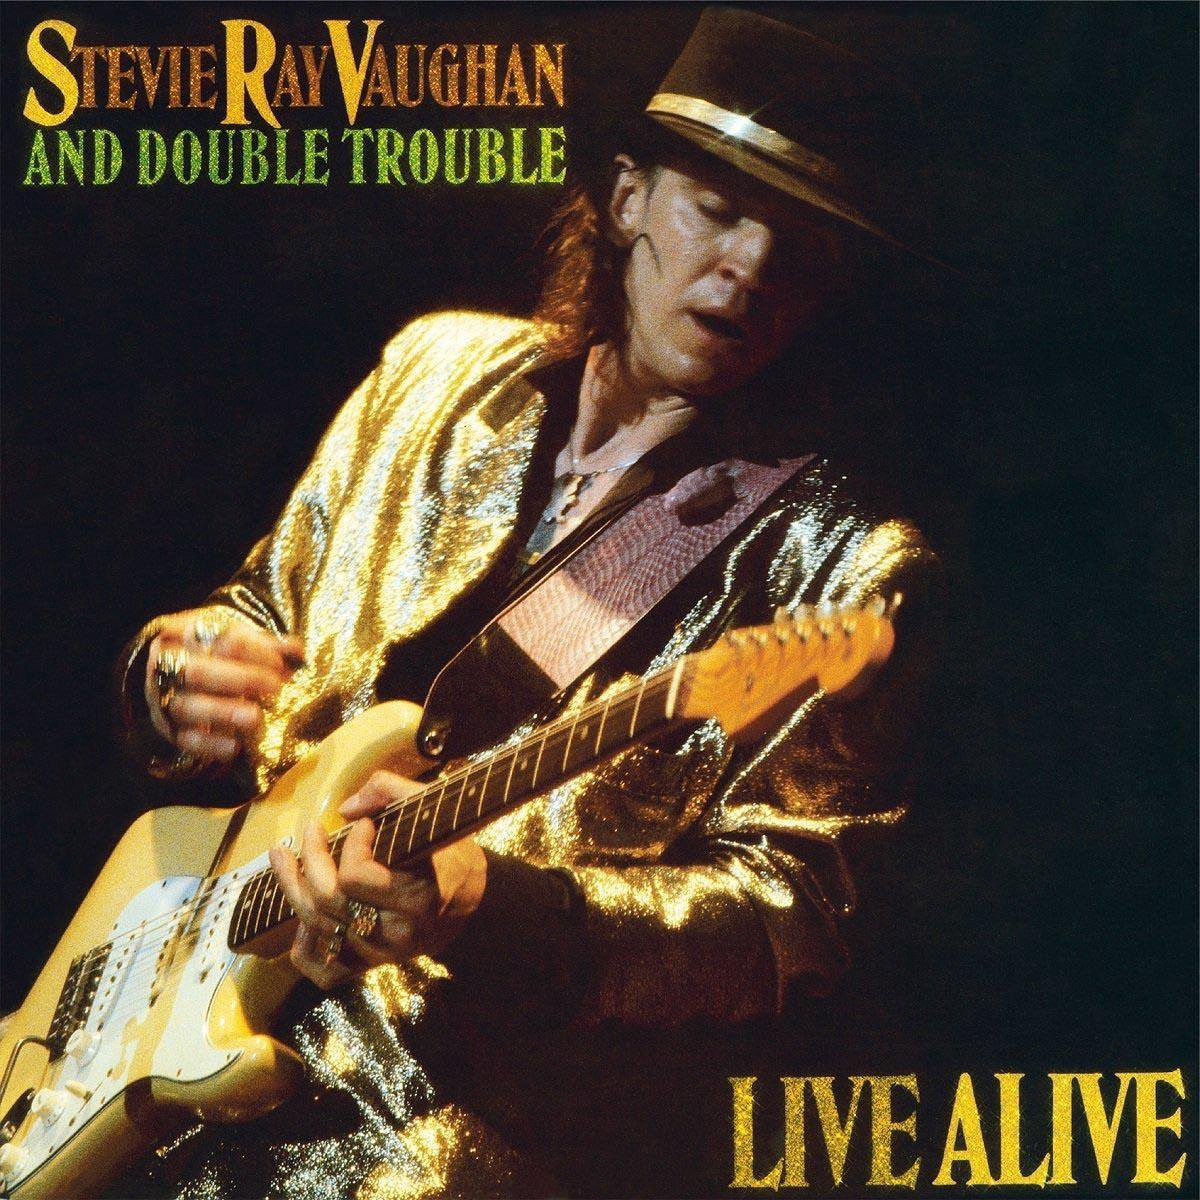 Live Alive (LP) - Stevie Ray Vaughan